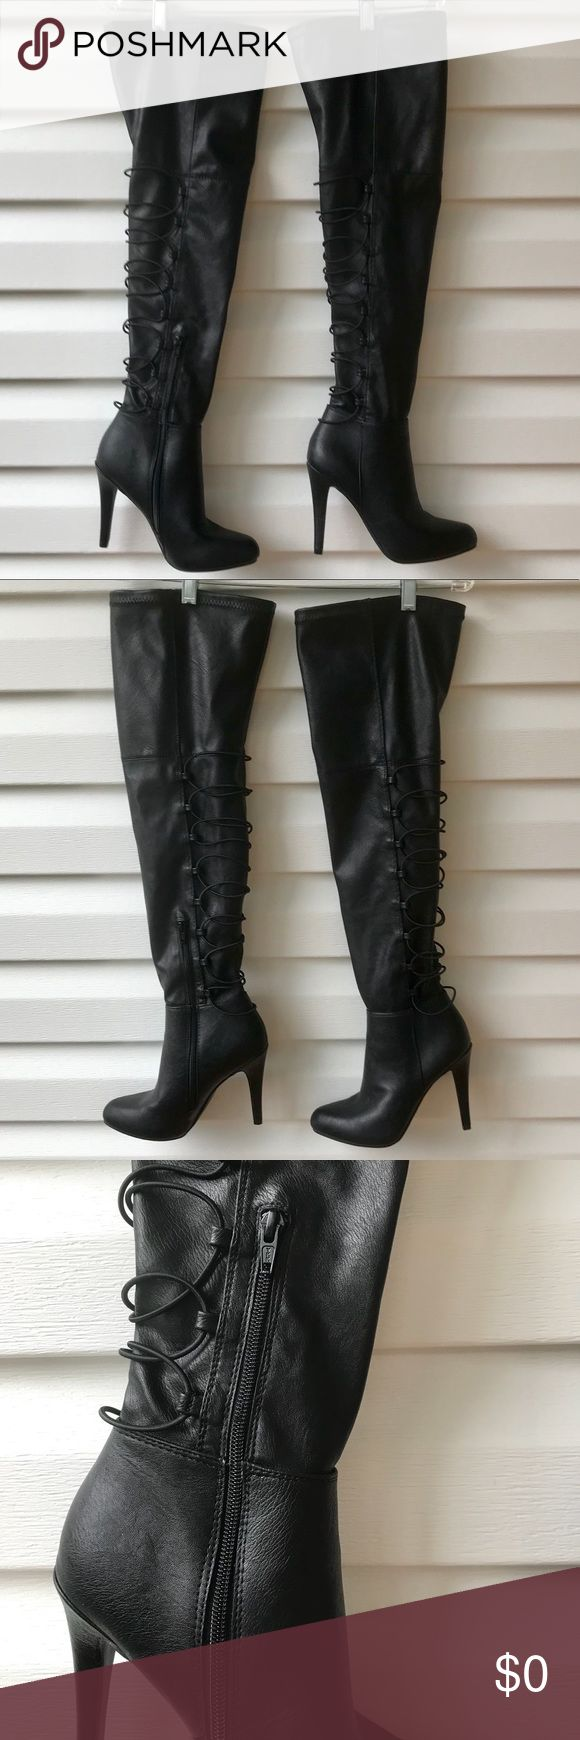 """🆕 Over the Knee Boots Lace up detail in the back of the boots, side zipper by the ankles. Only tired but never worn. Will measure heel and height of boots shortly. Model in the picture is 5'3"""". Jennifer Lopez Shoes Heeled Boots"""